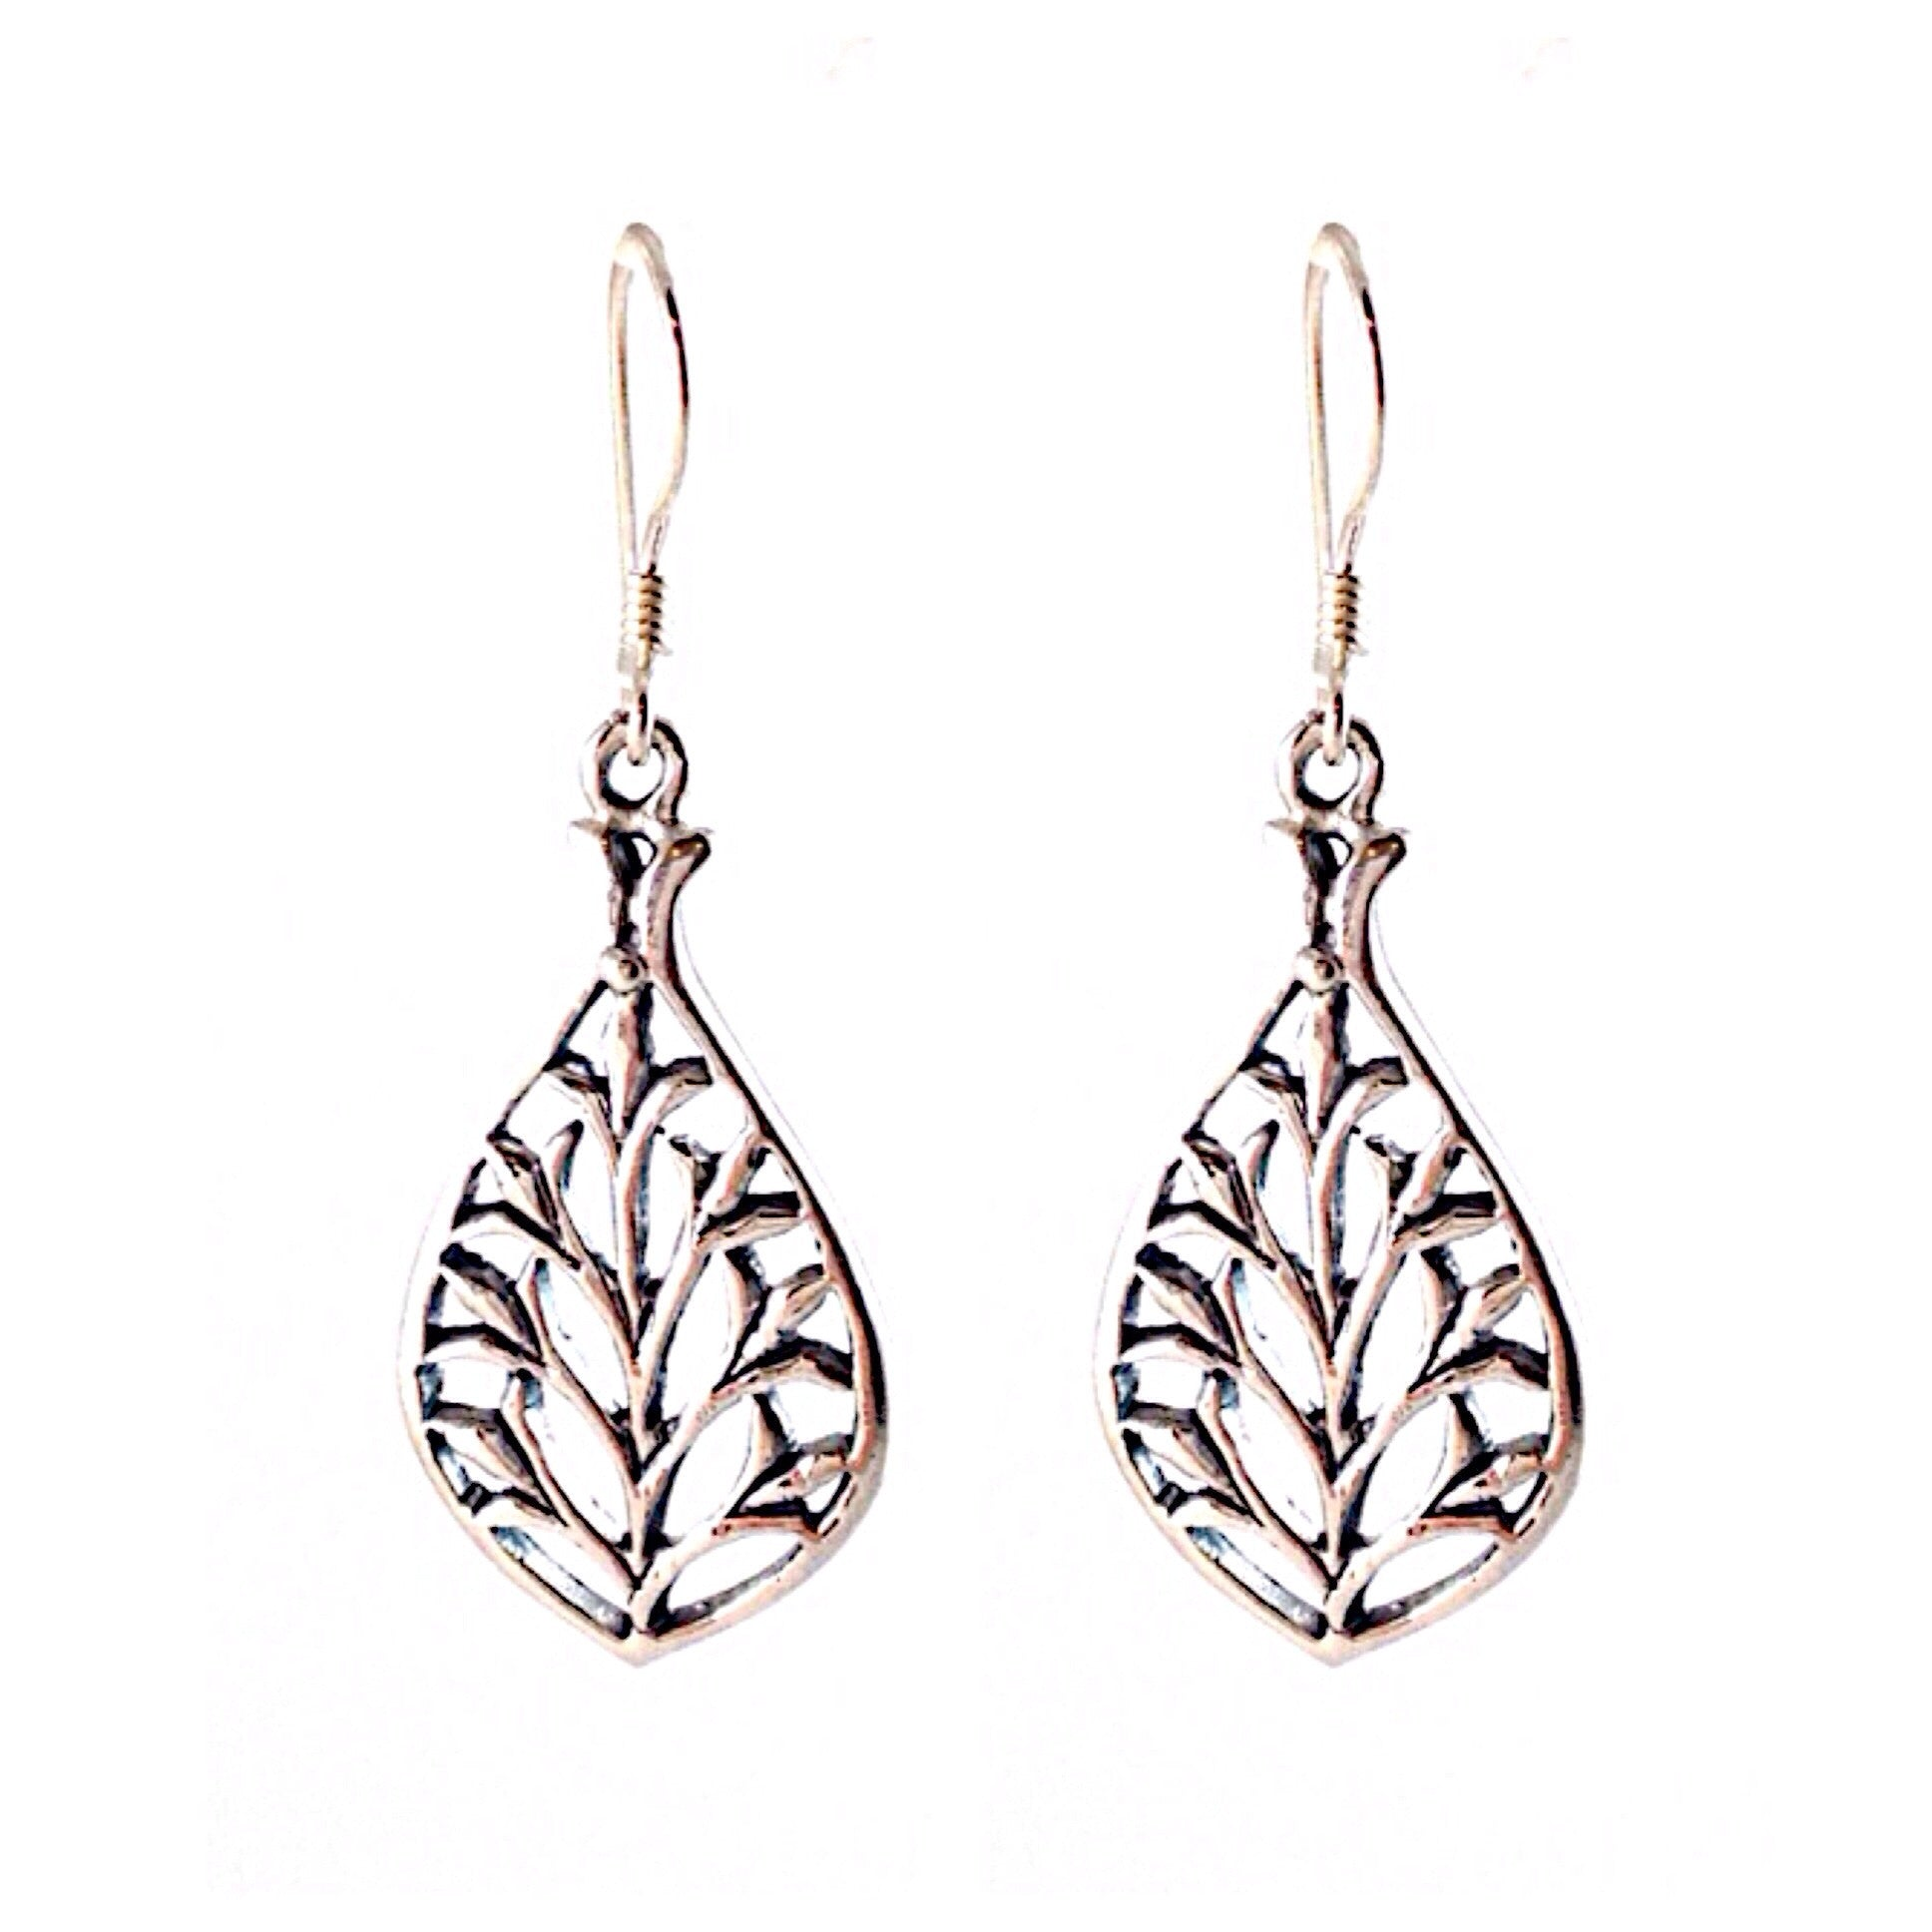 Teardrop Leaf Earrings, $19 | Sterling Silver | Light Years Jewelry